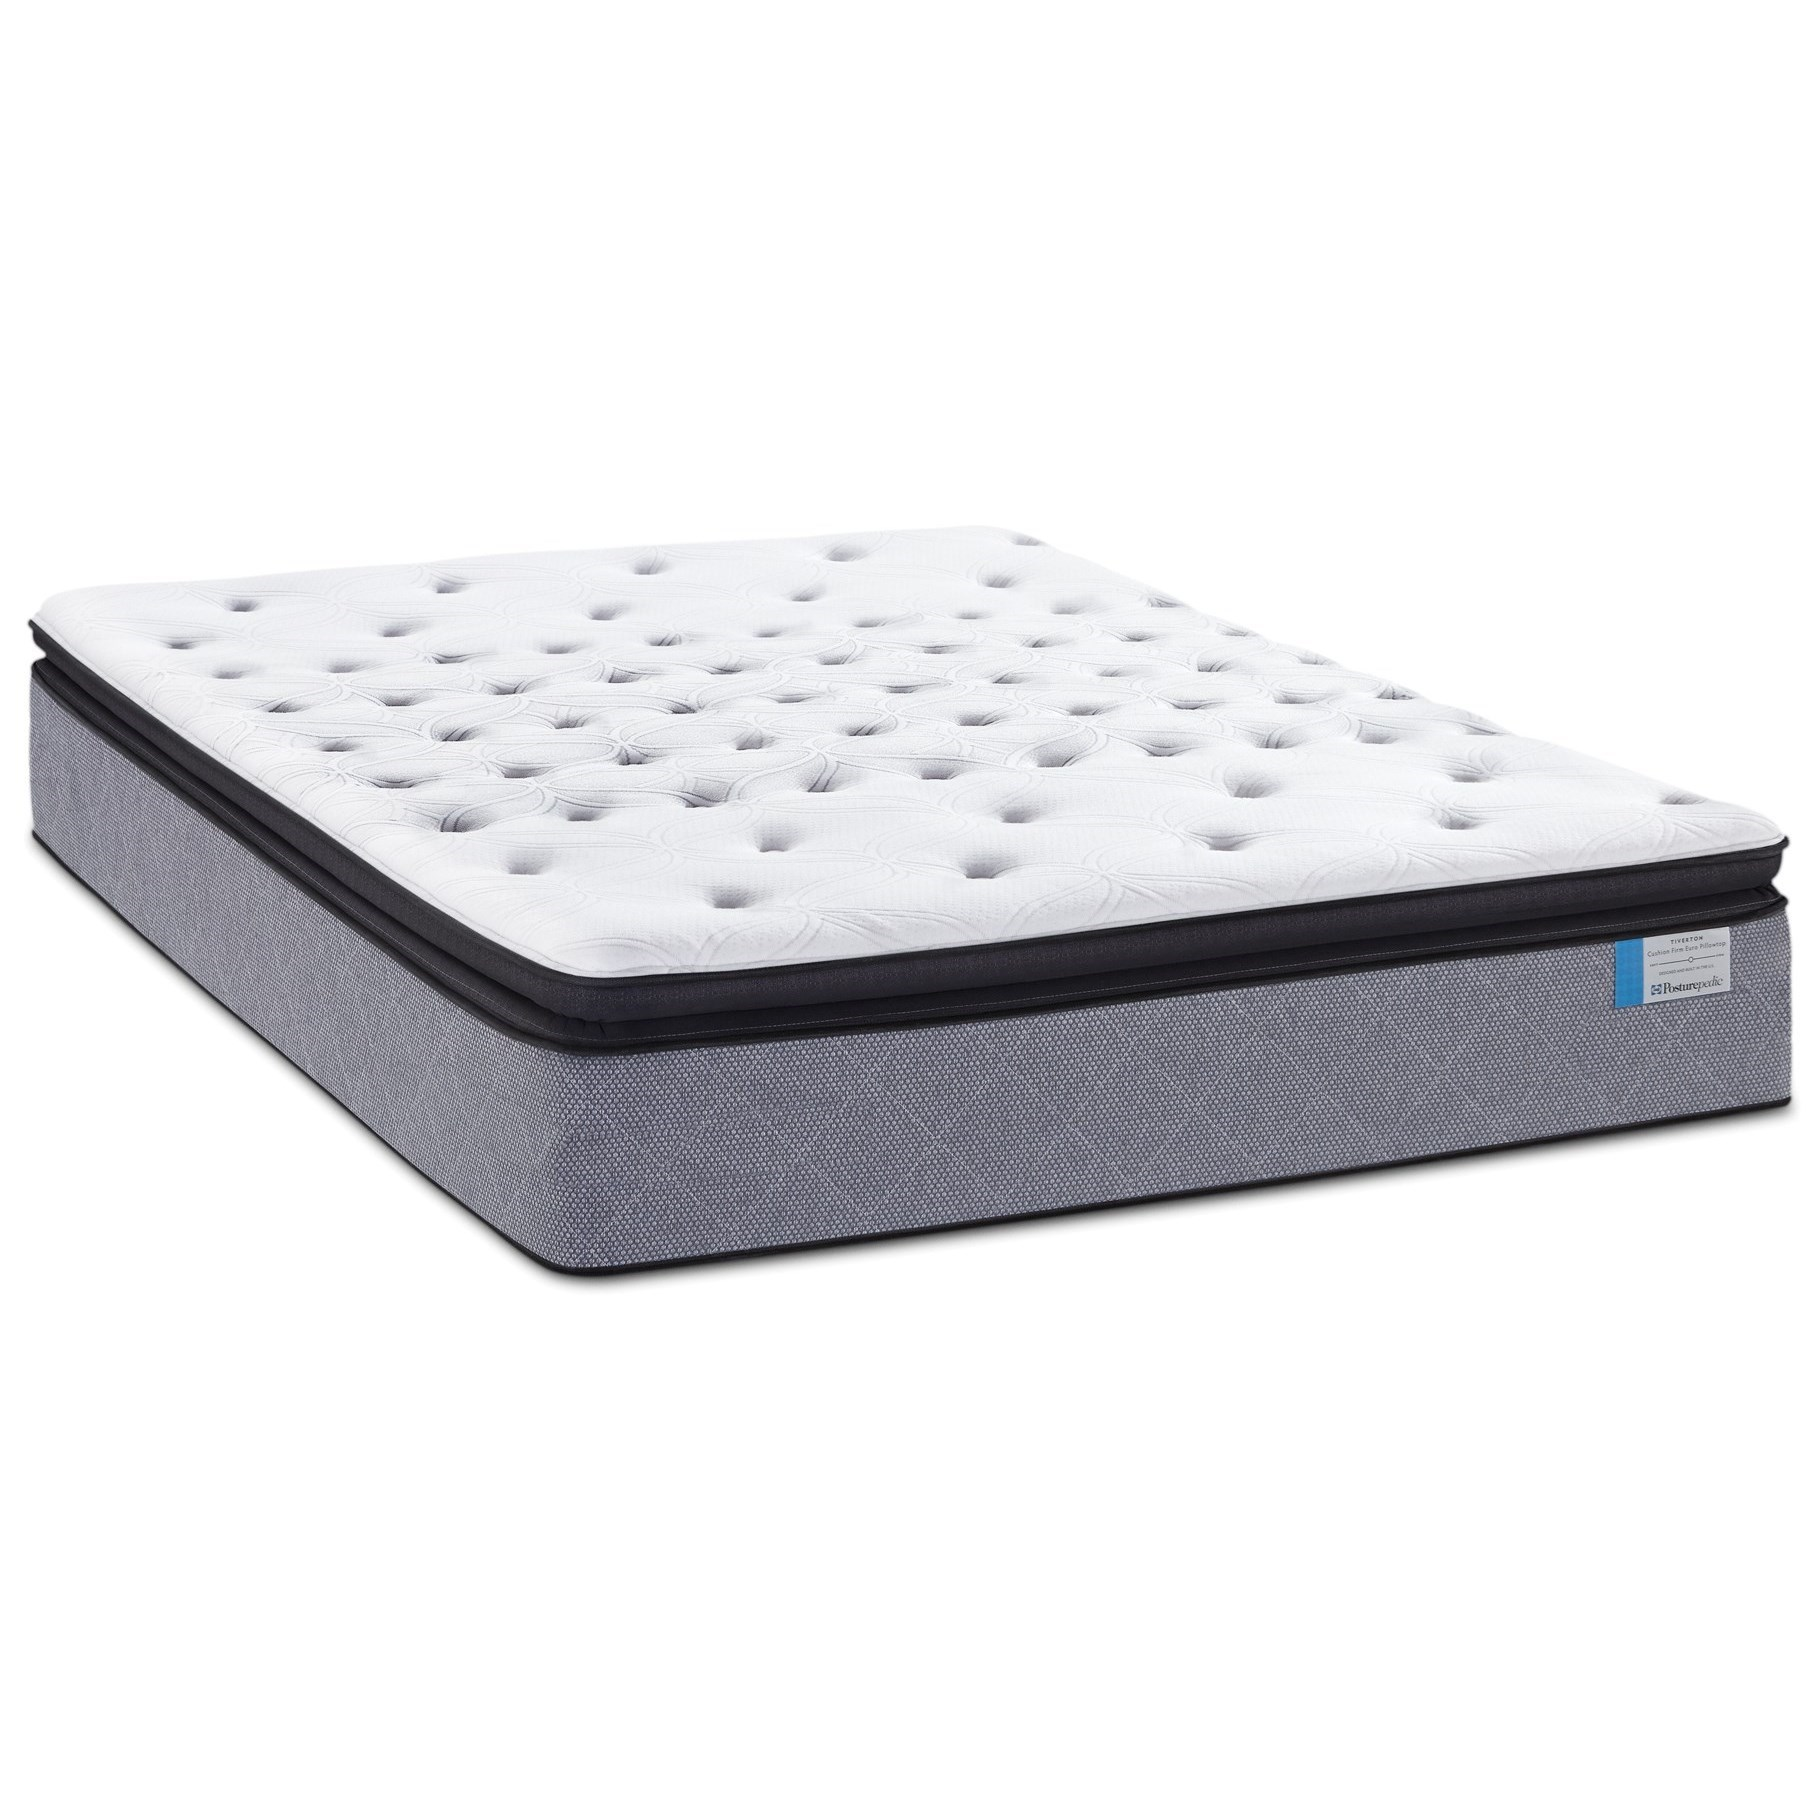 Sealy Posturepedic A2 Cal King EPT Plush Mattress - Item Number: PlushEPT-CK